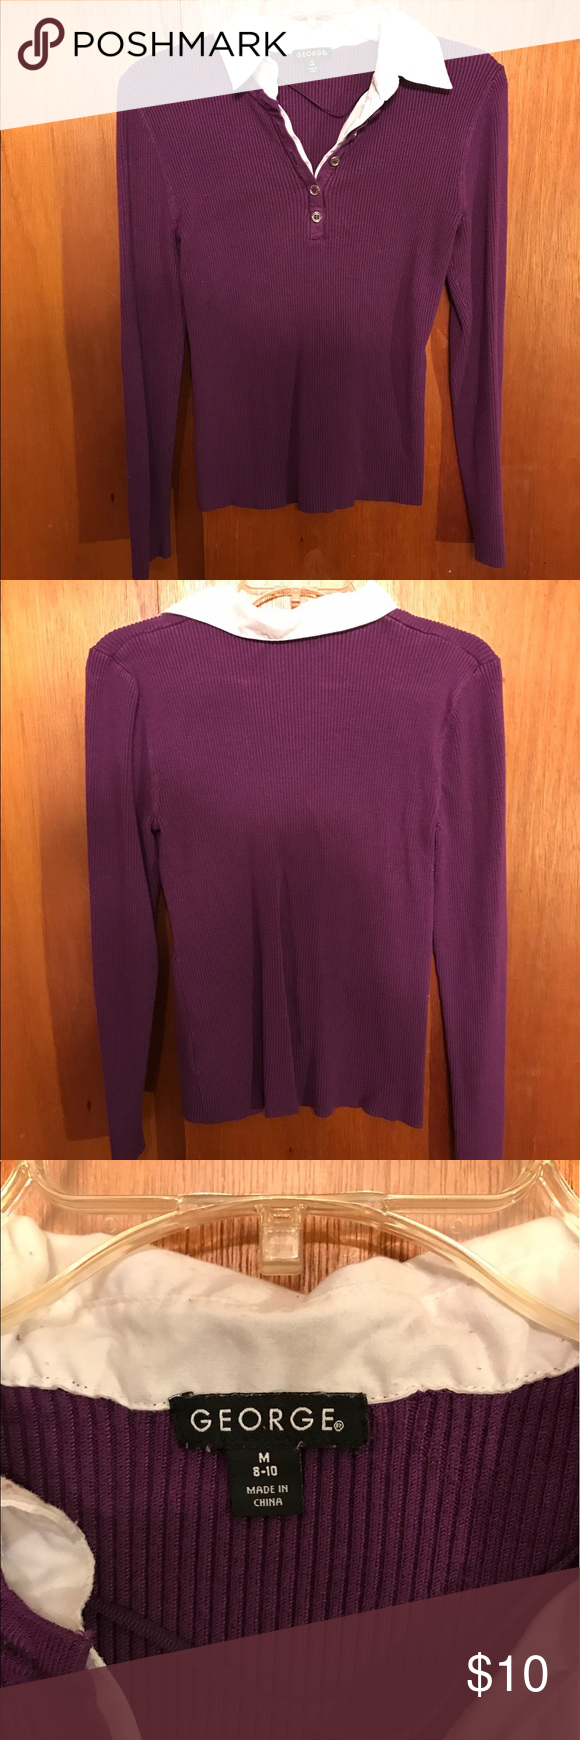 George shirt Bright purple, ribbed sweater with collar and half ...